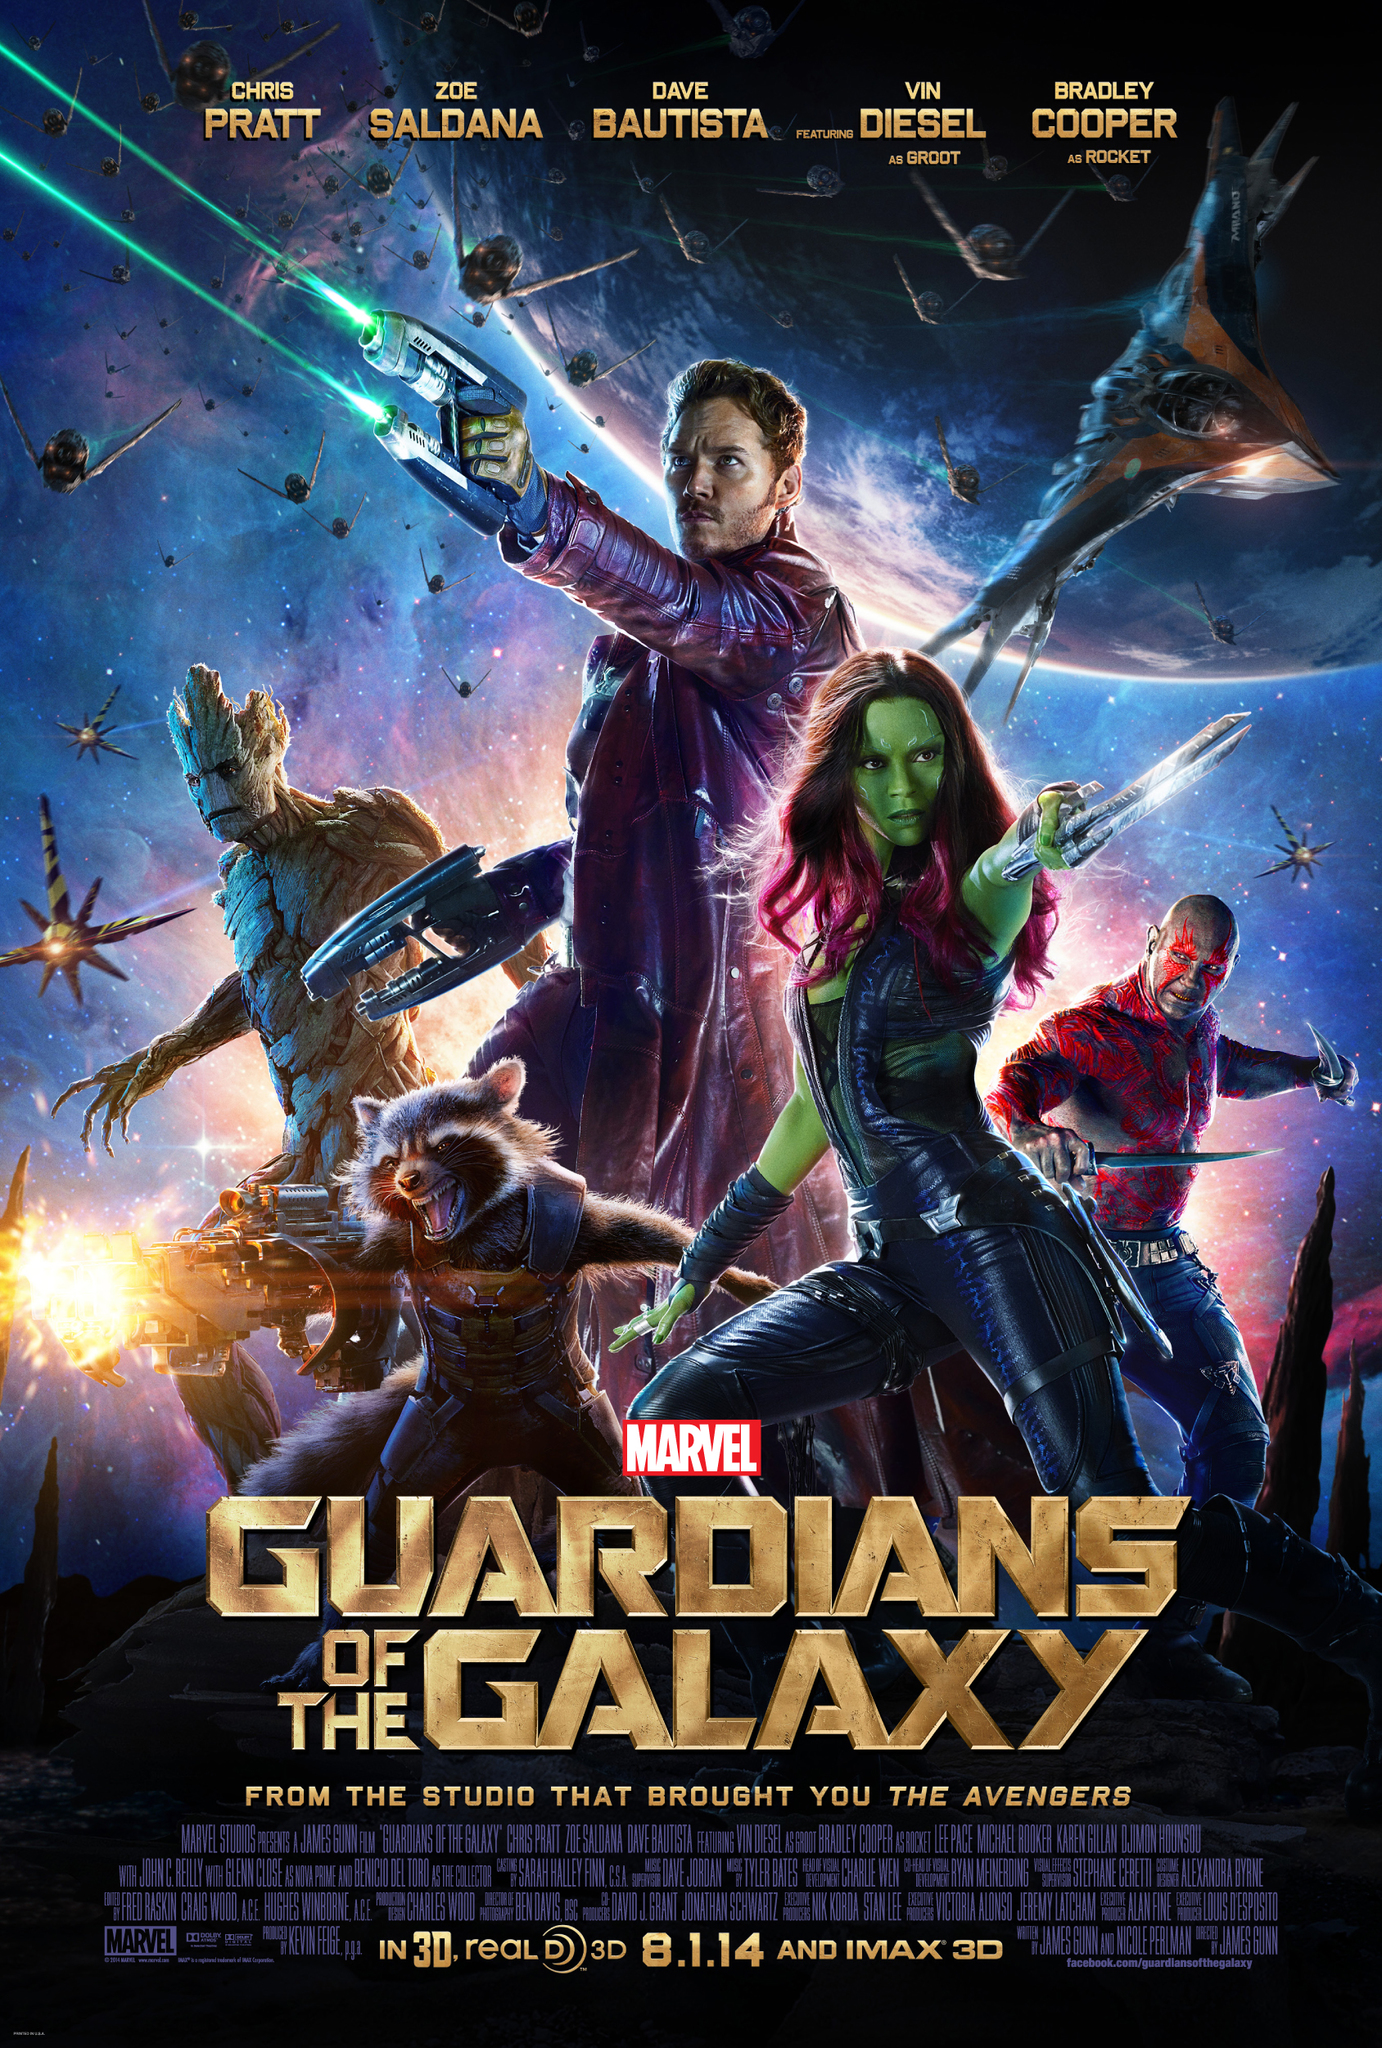 Guardians of the Galaxy in other media